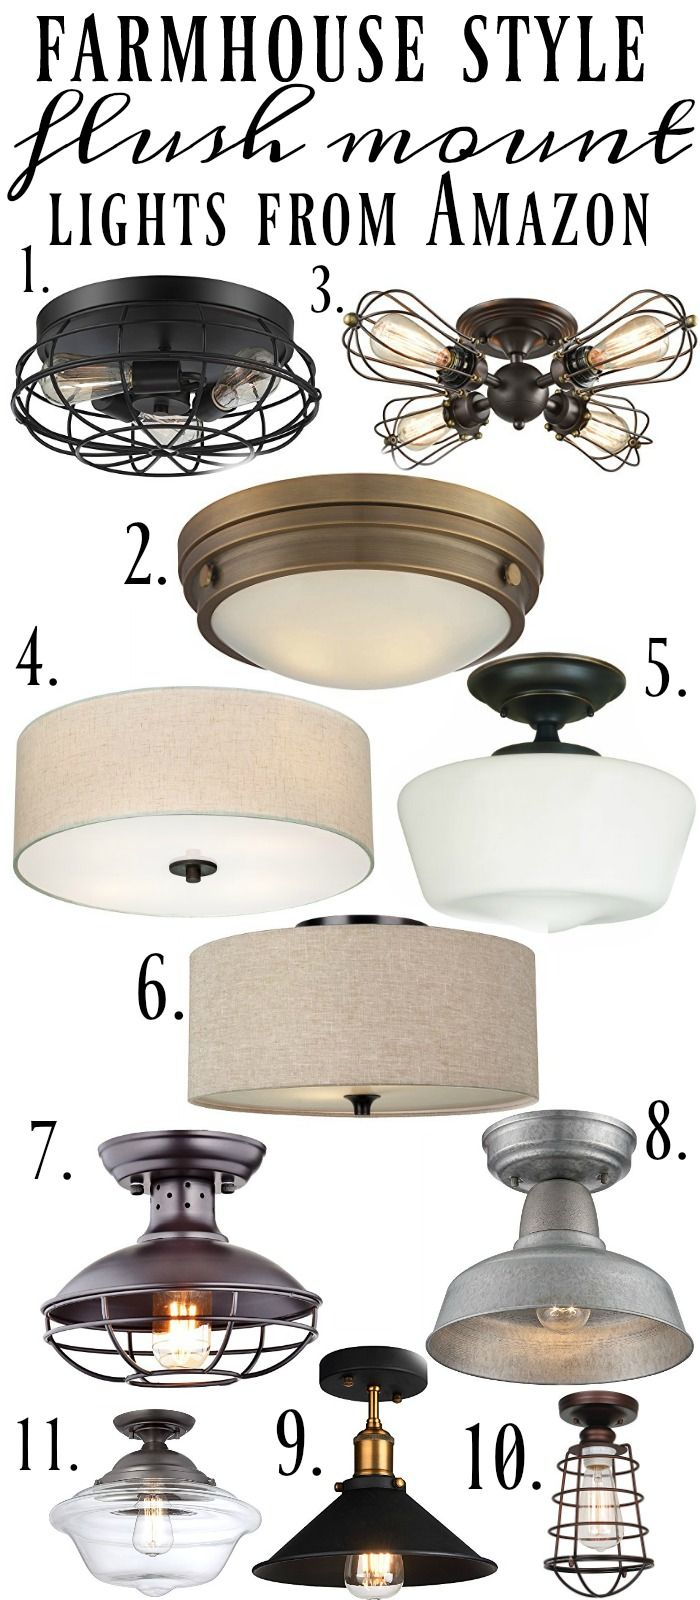 Farmhouse Flush Mount Lights Farmhouse Style Lighting Farmhouse Light Fixtures Farmhouse Flush Mount Light